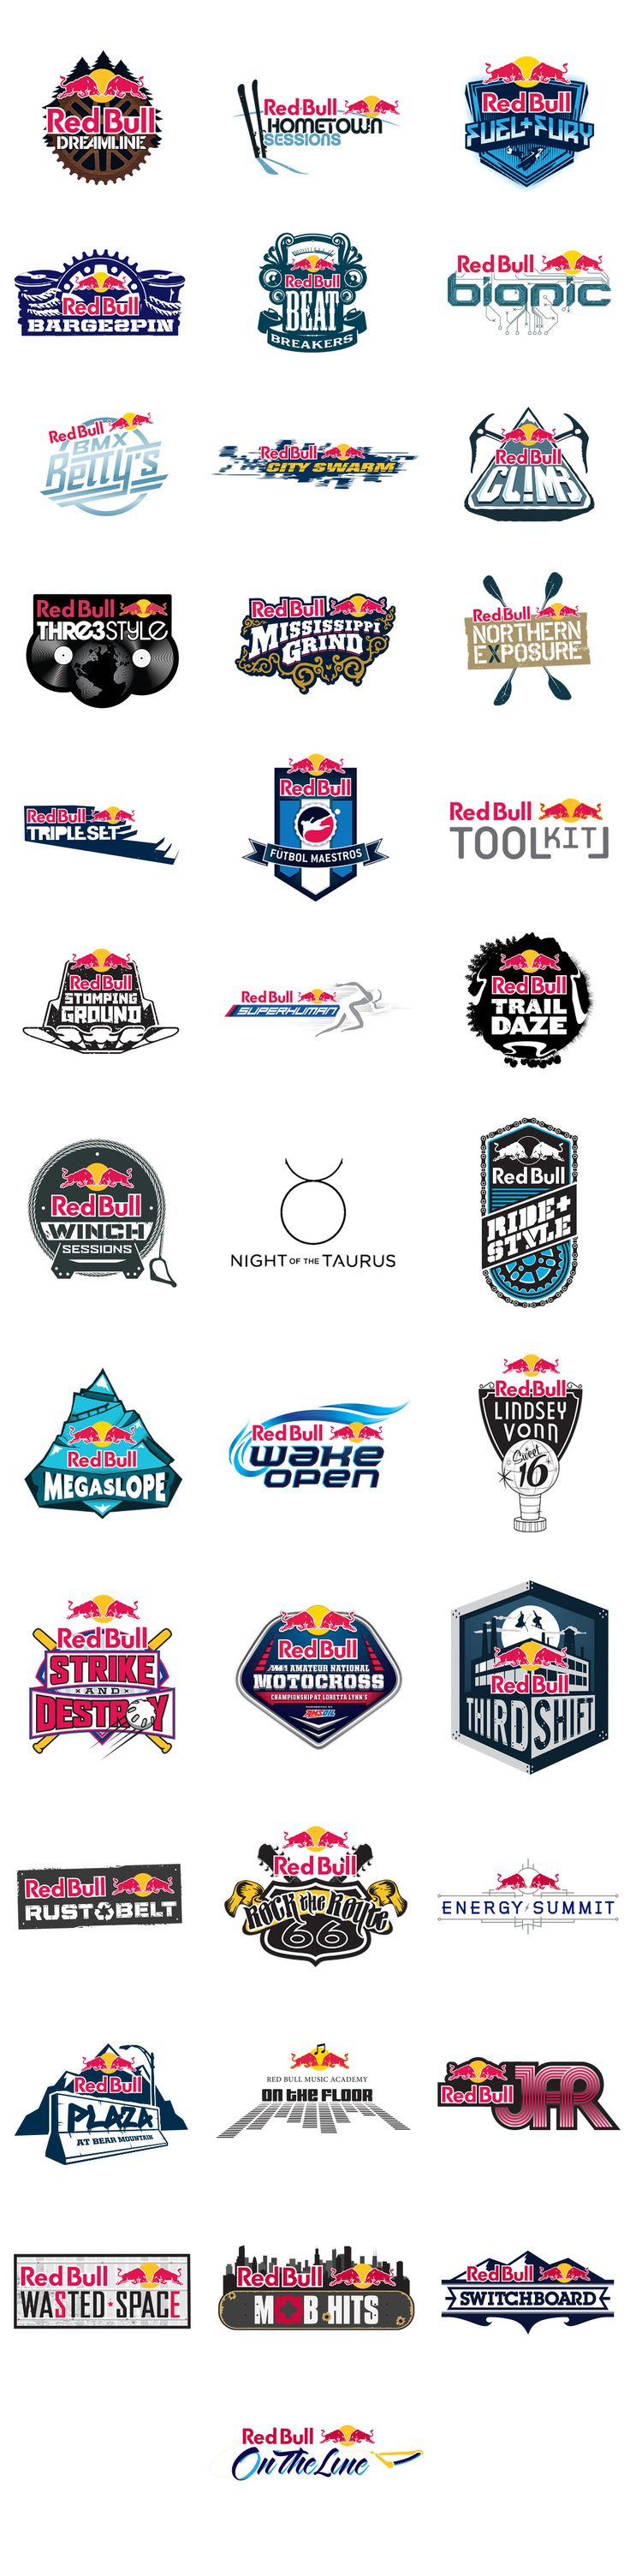 Six-Speed - Red_Bull_Logos